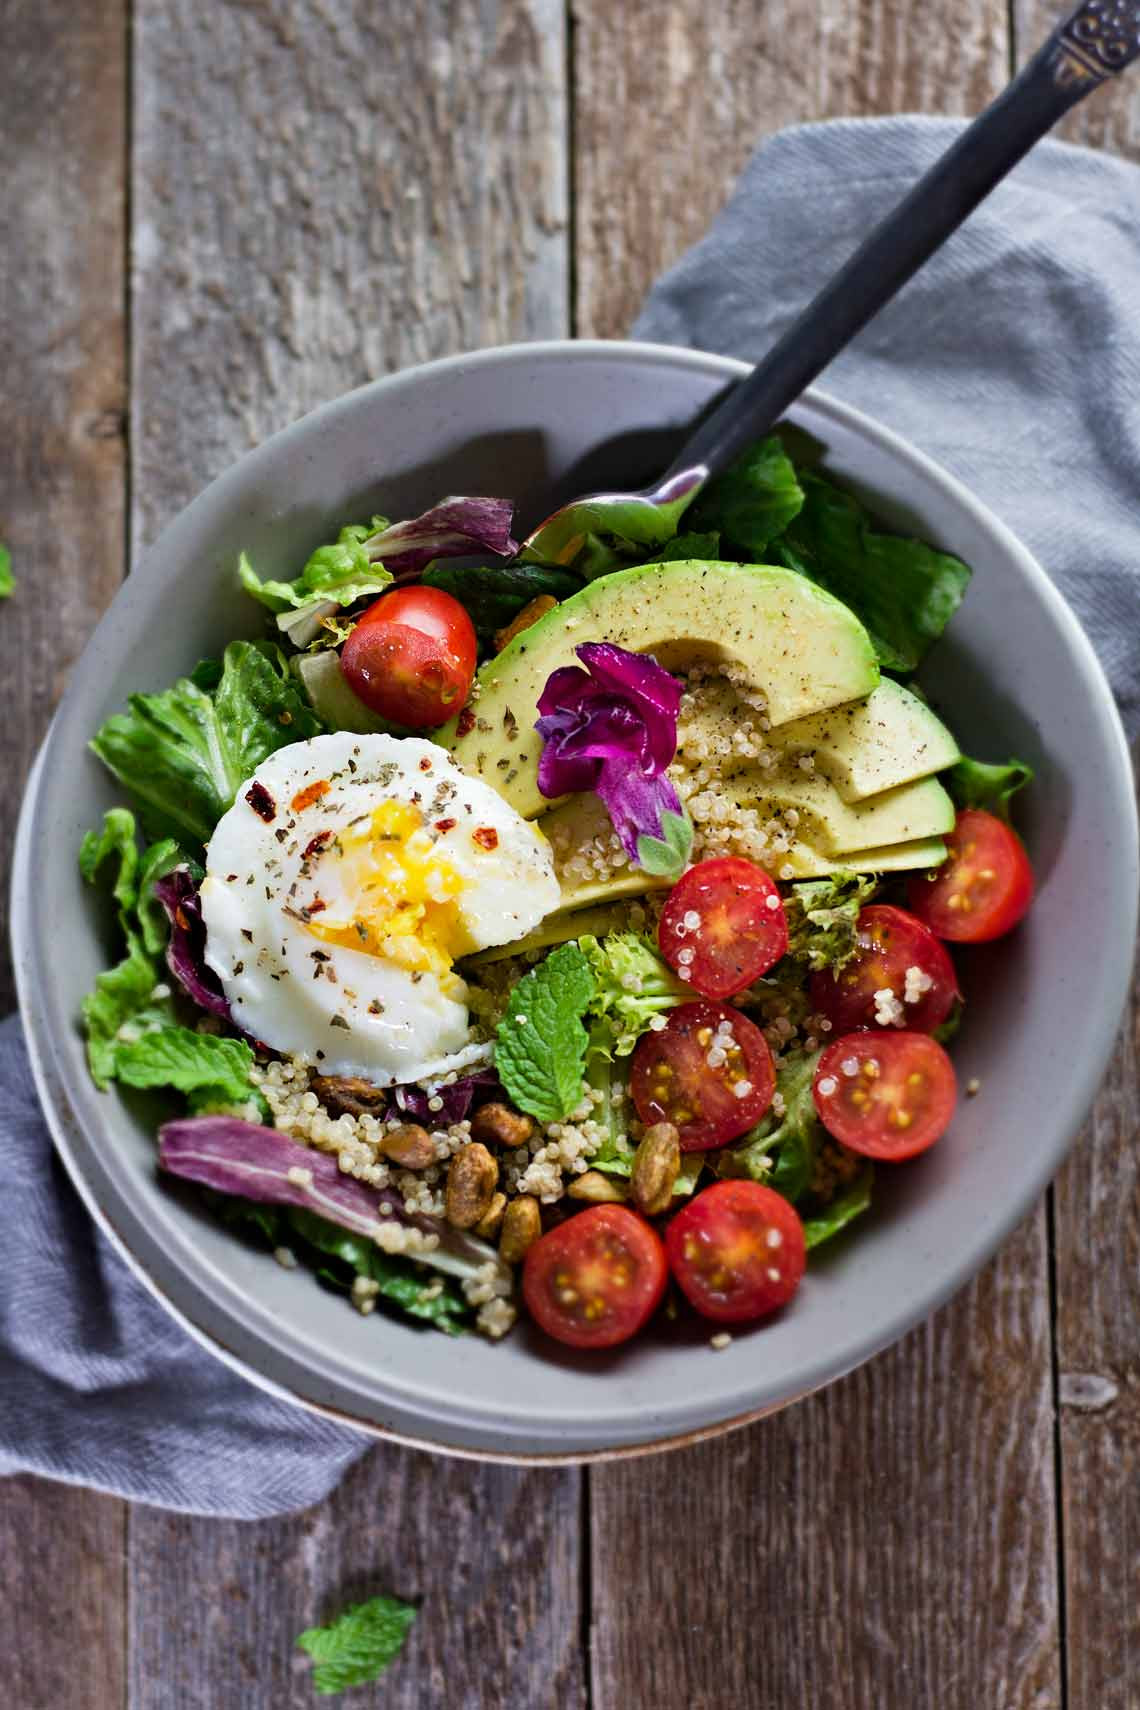 Healthy Avocado Breakfast  Poached Egg & Avocado Breakfast Salad Jar Lemons